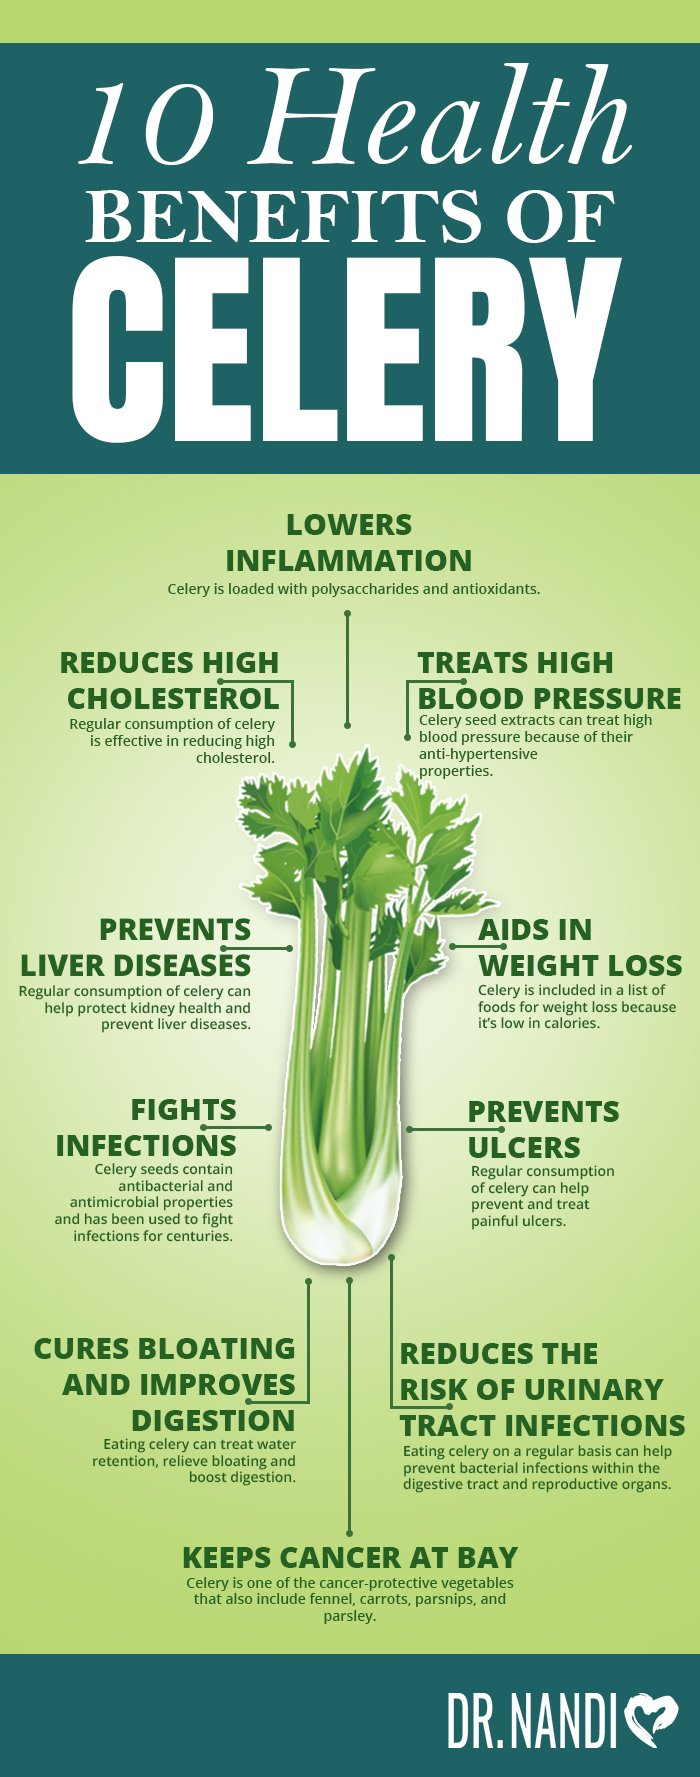 10 Health Benefits of Celery